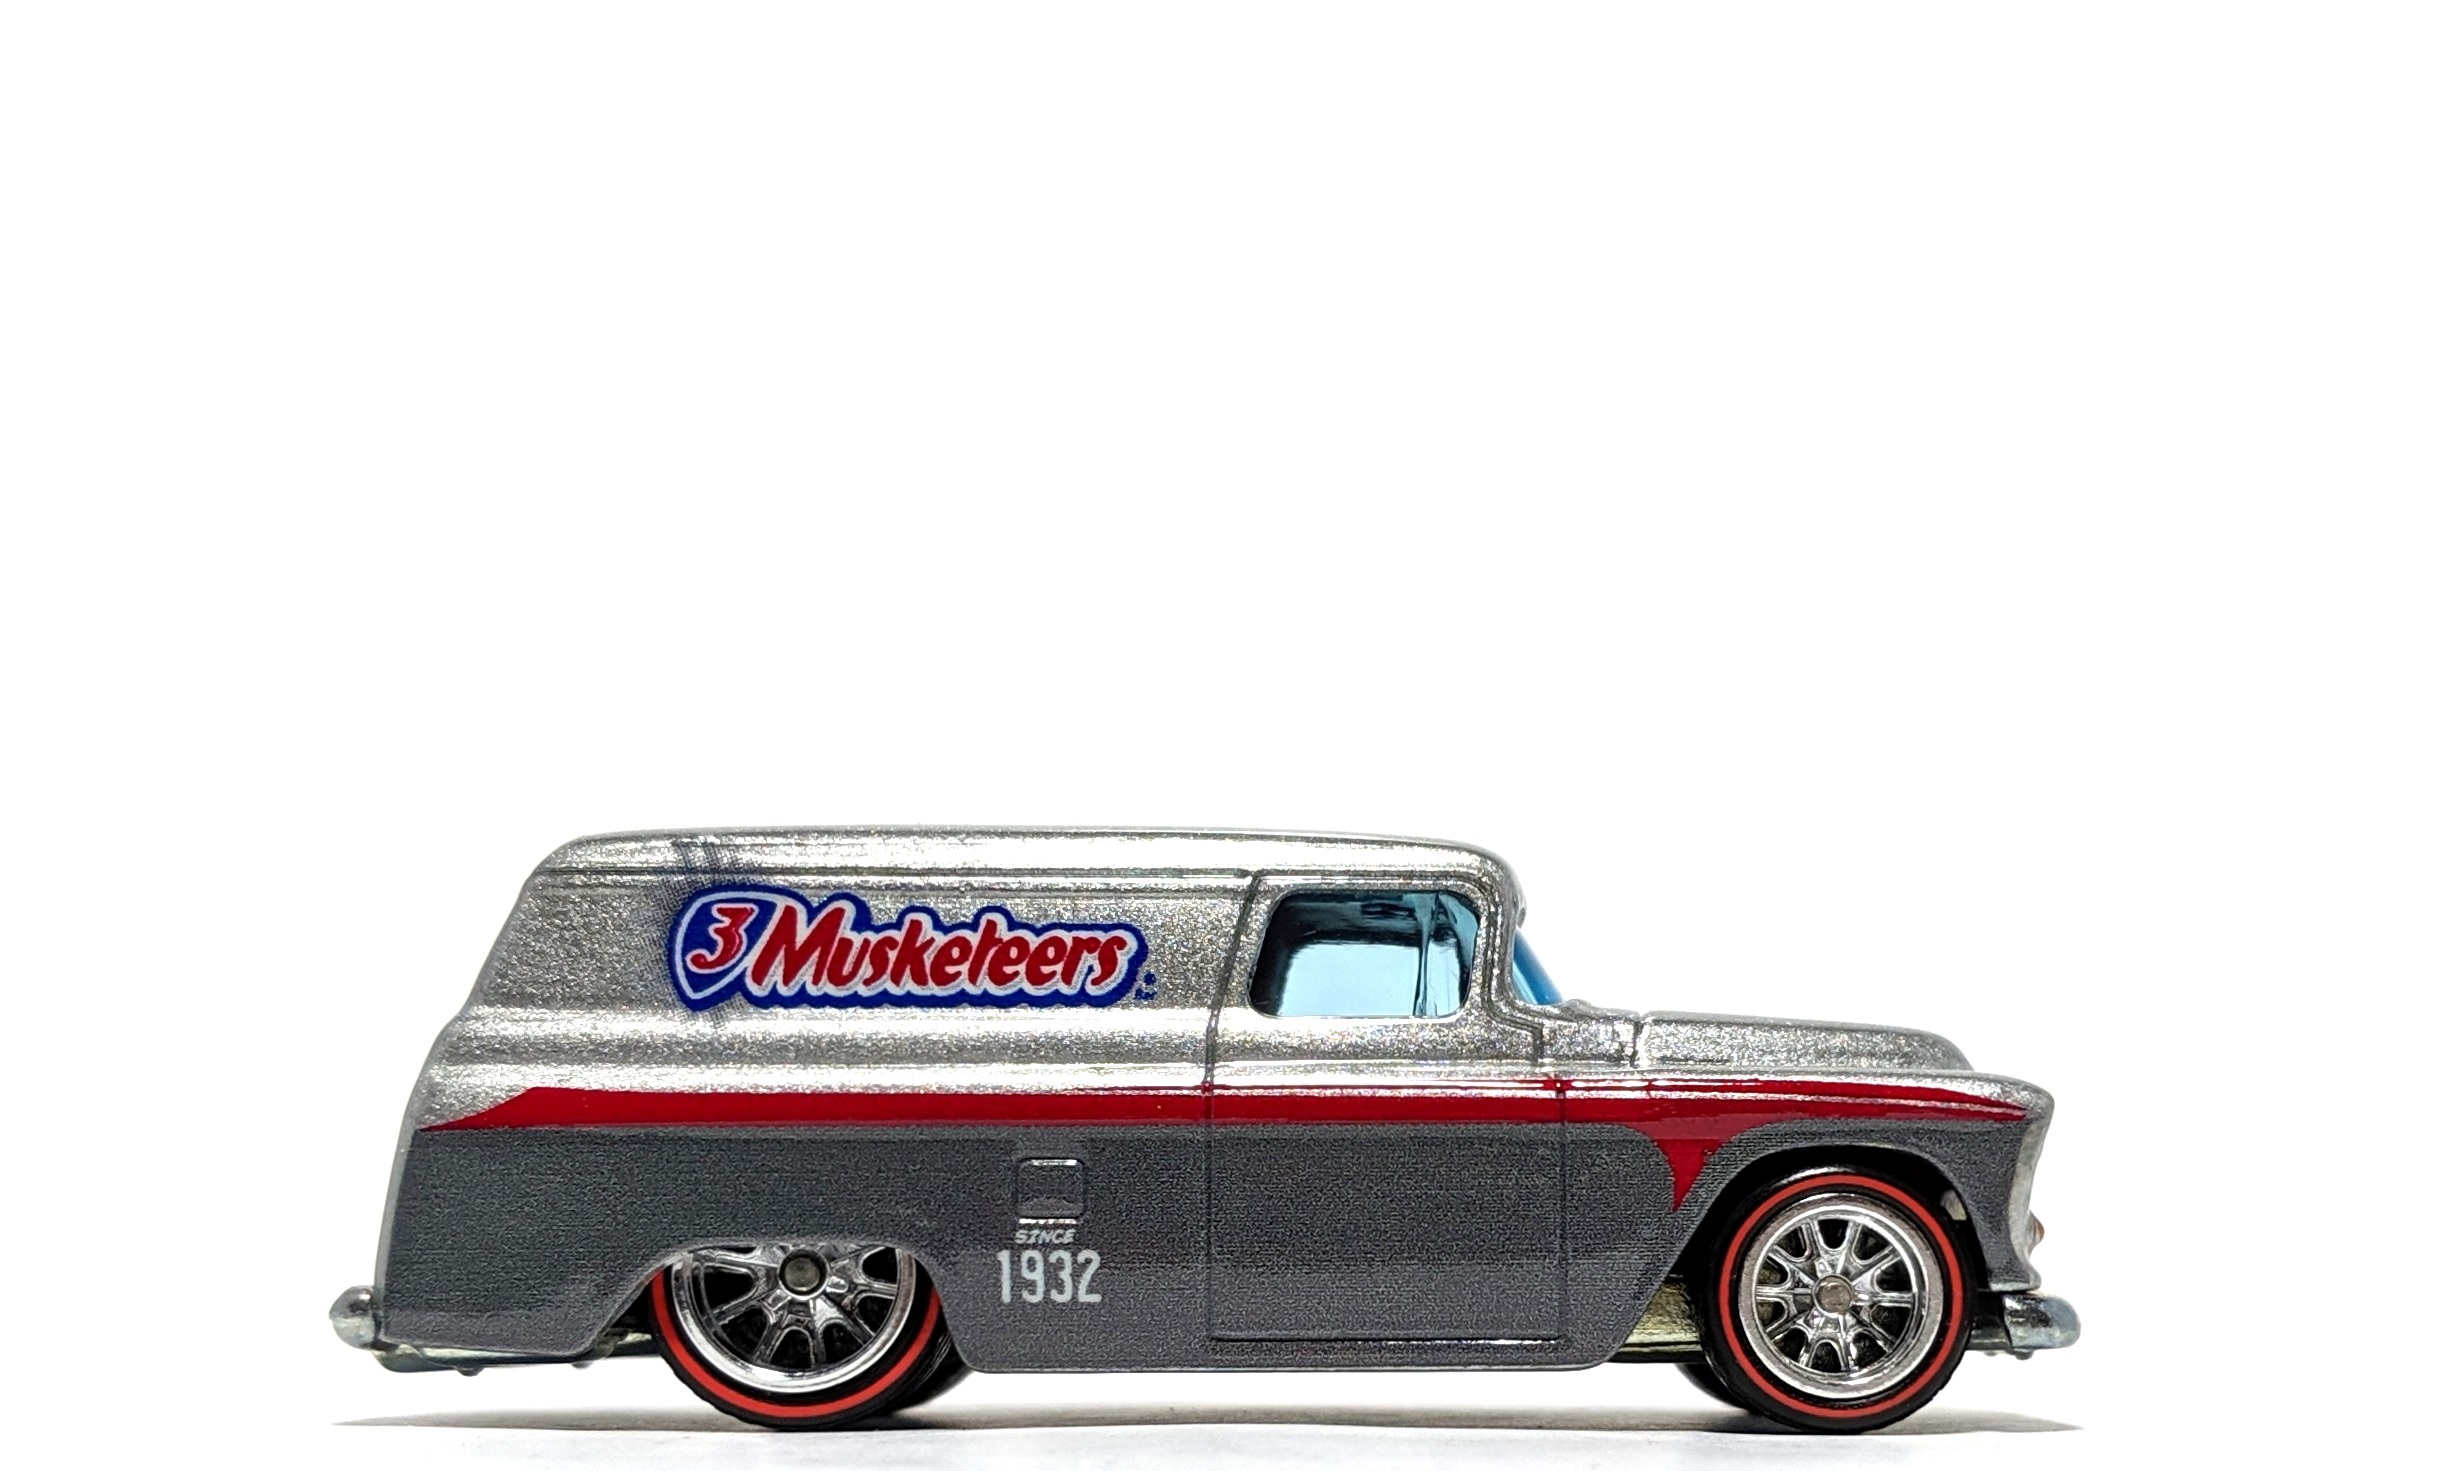 "'55 Chevy Panel ""3 Musketeers"" - Hot Wheels Pop Culture"